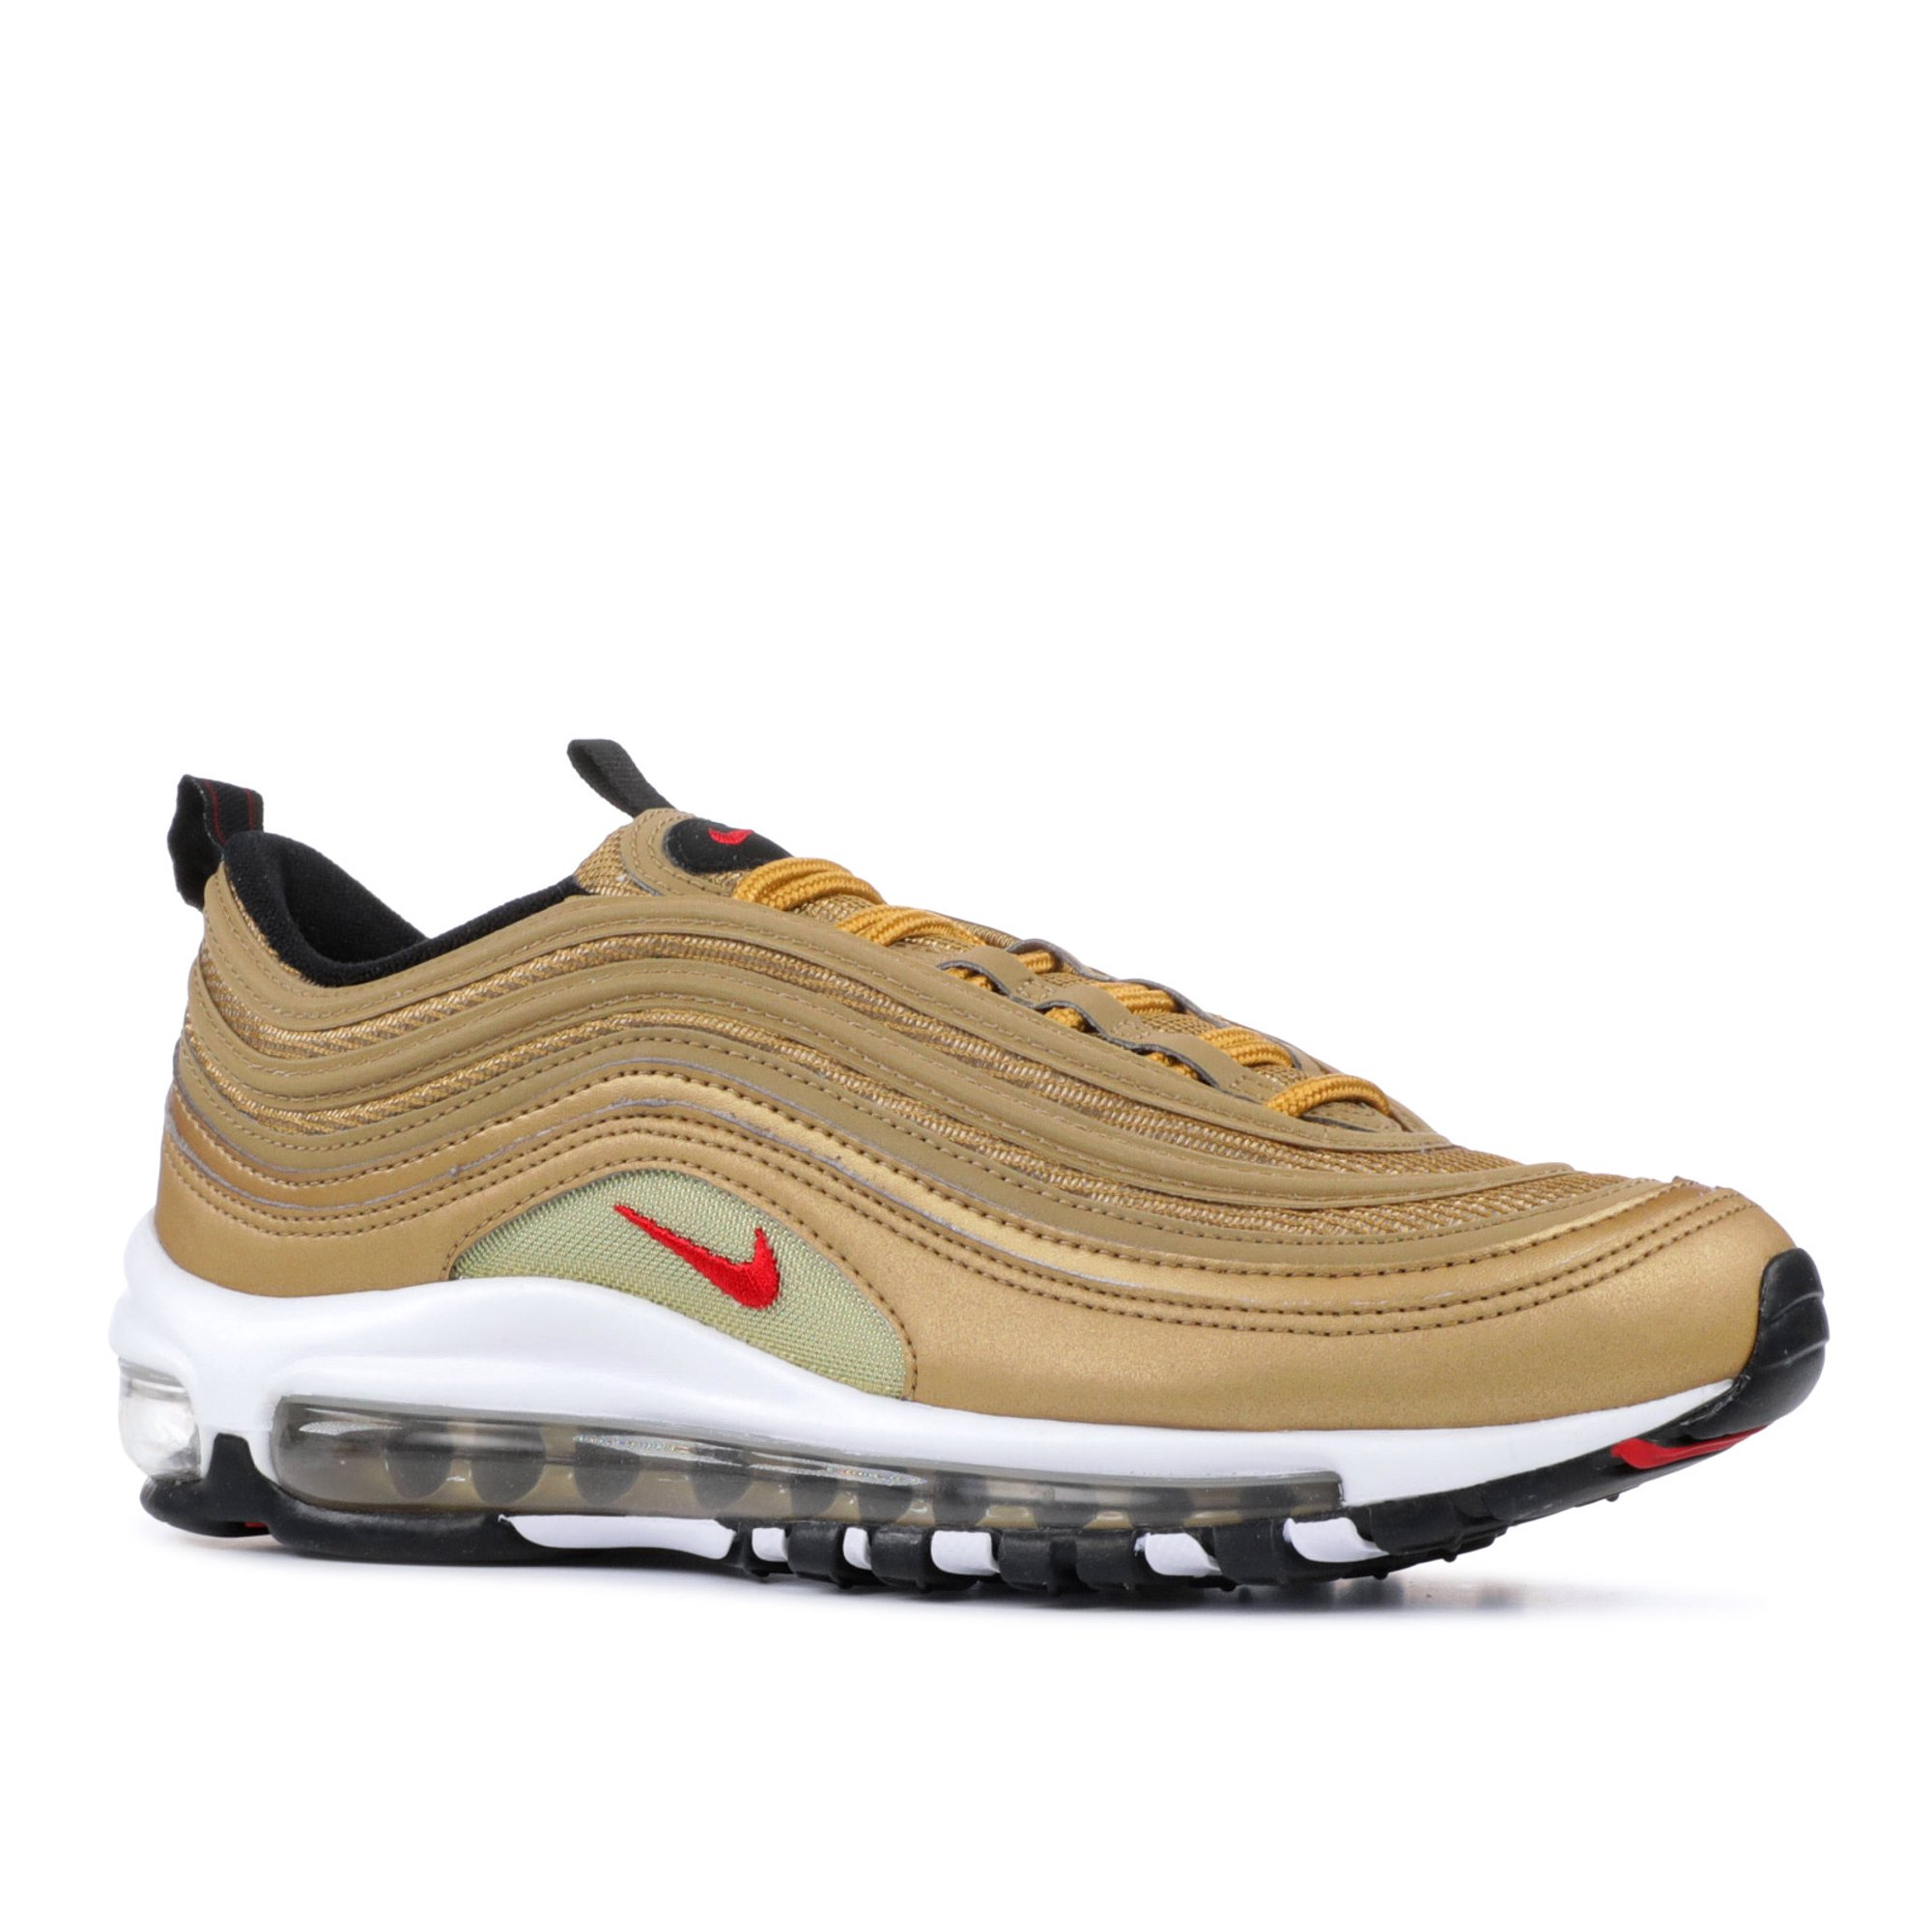 huge selection of 262a5 e81eb Nike - Unisex - Air Max 97 Qs (Gs) 'Metallic Gold '2017 ...